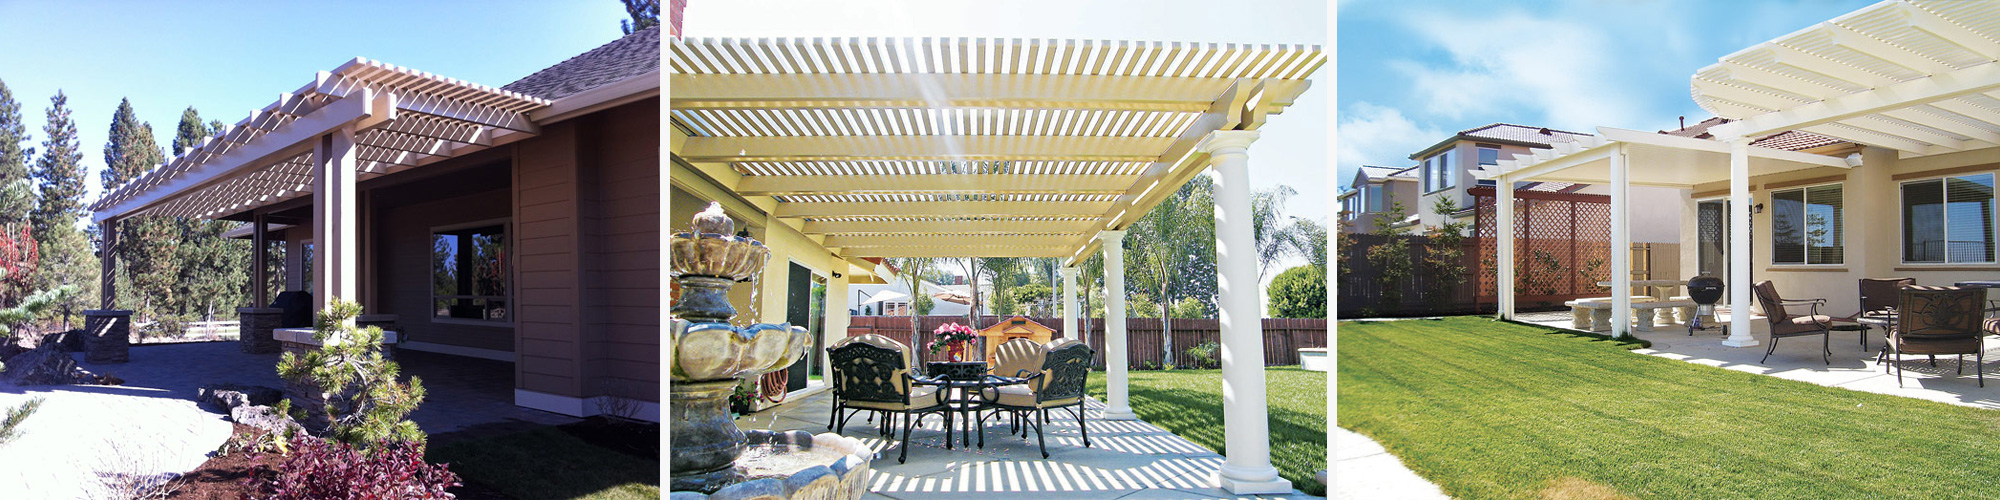 Stylish Lattice Patio Covers U0026 Shades